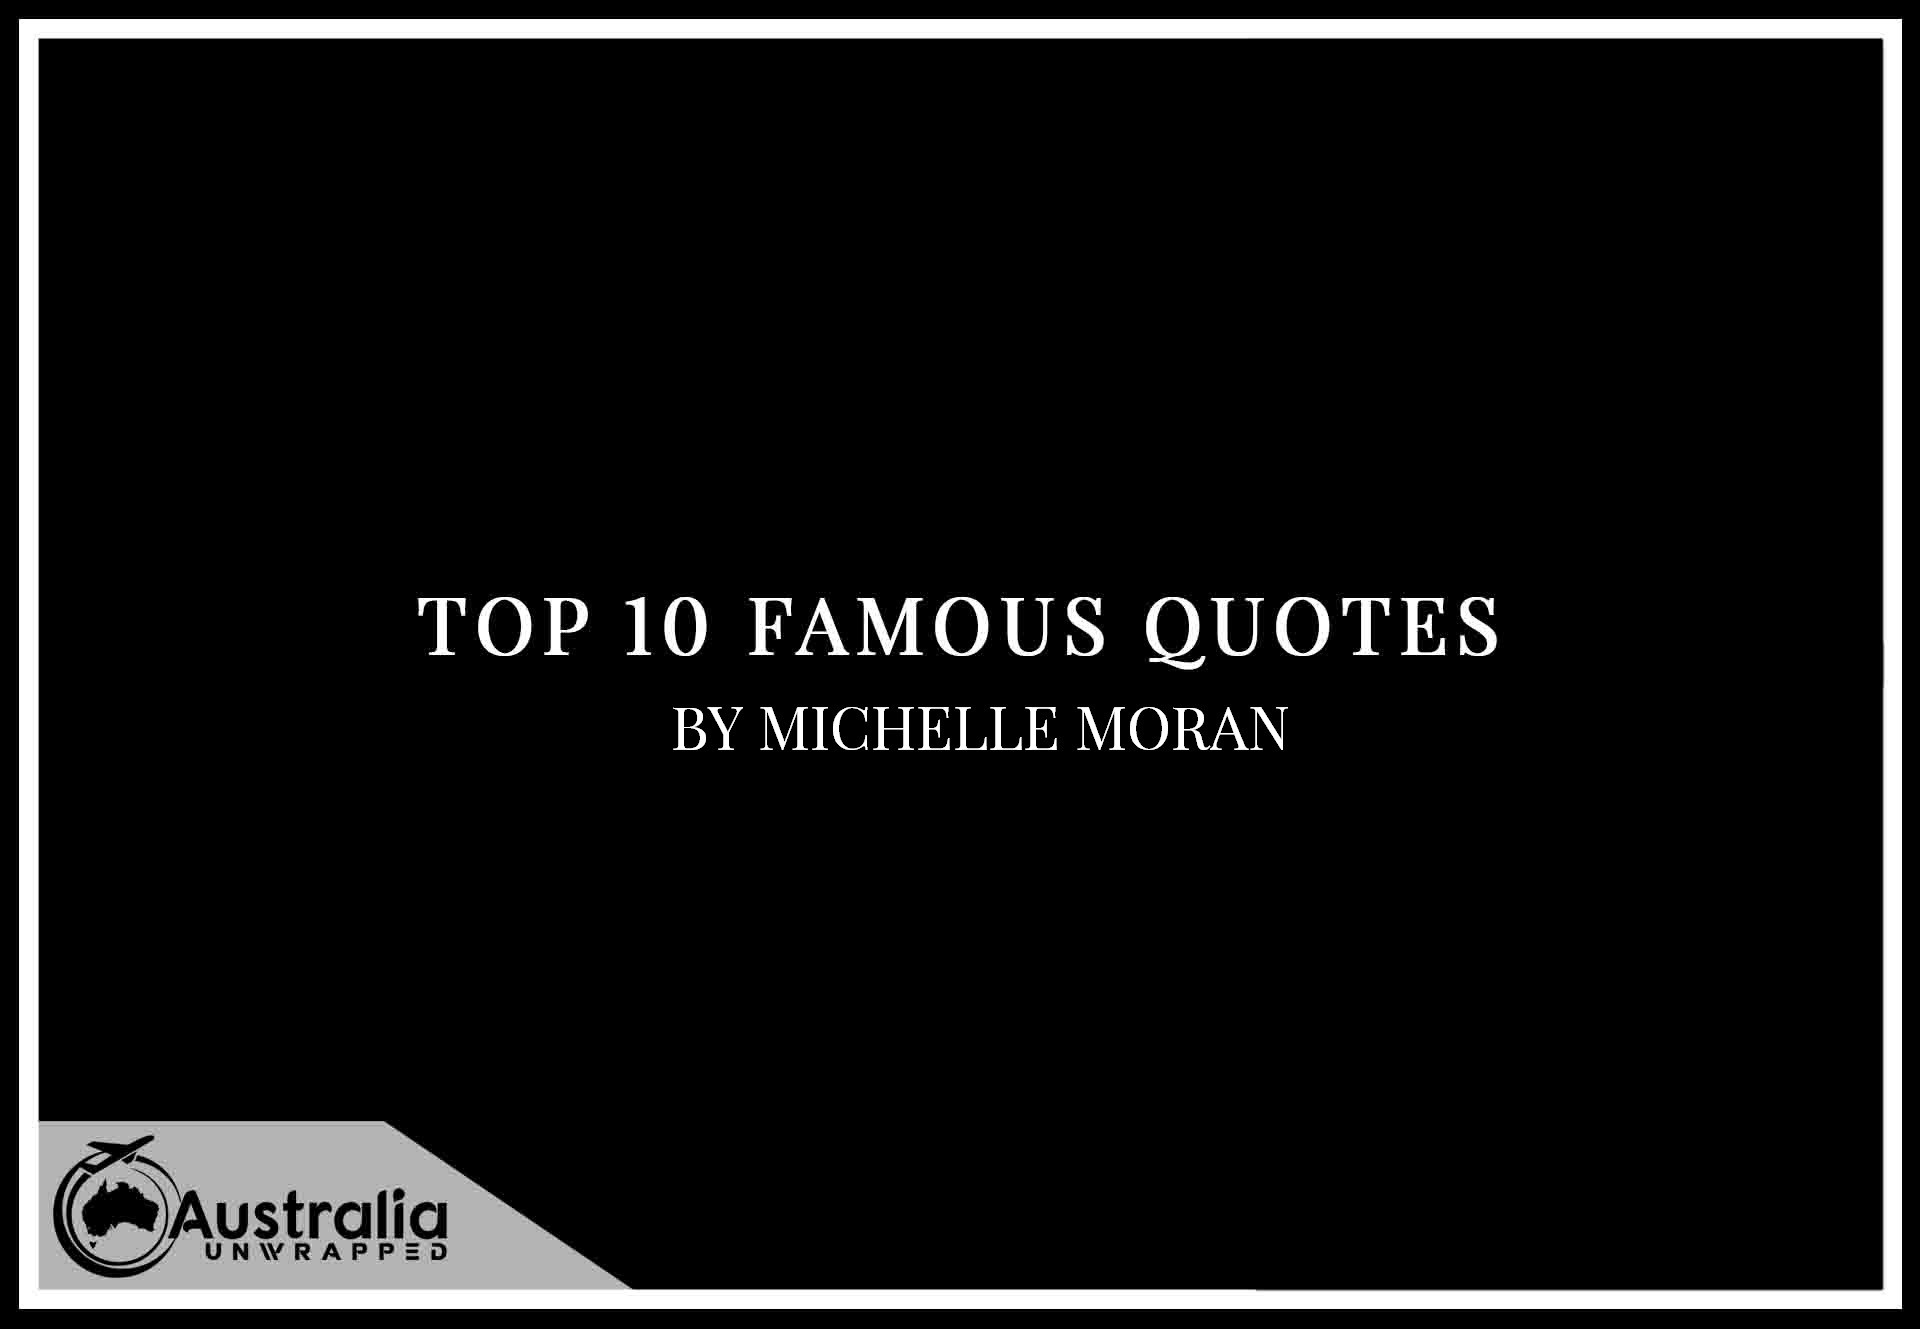 Top 10 Famous Quotes by Author Michelle Moran